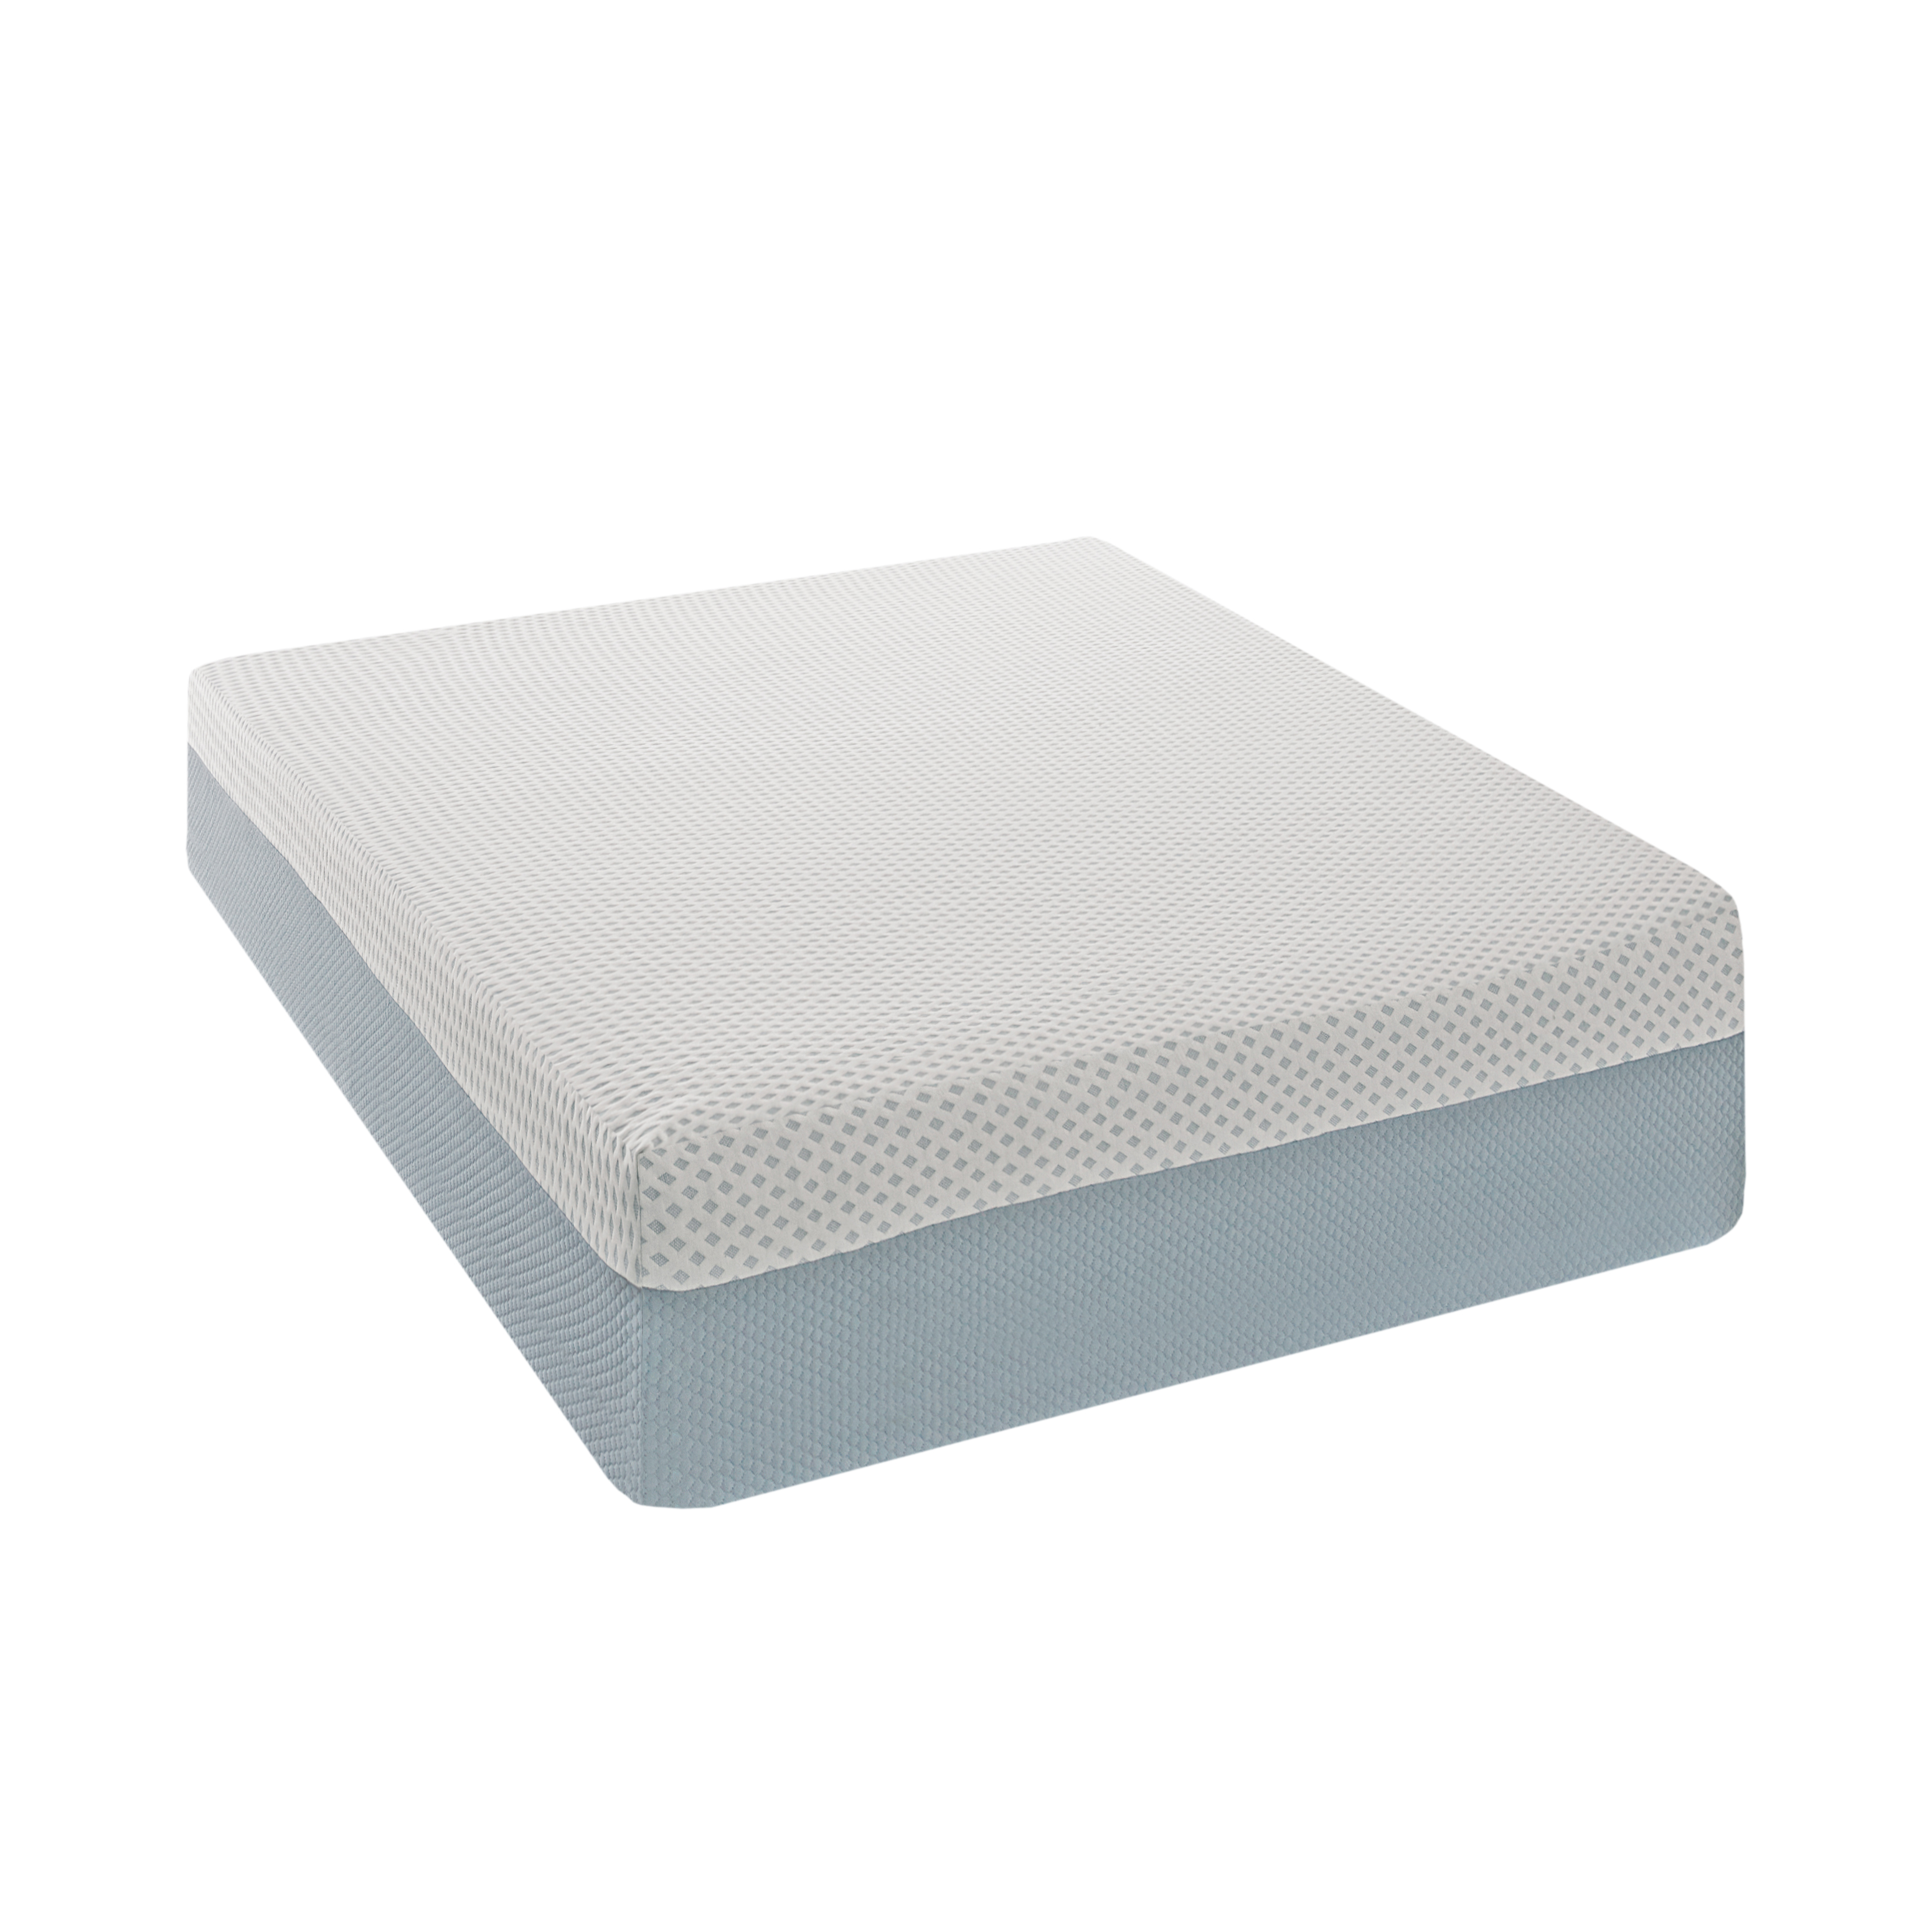 Contura 9 Inch Firm Latex Foam 1000 Series Mattress Bed